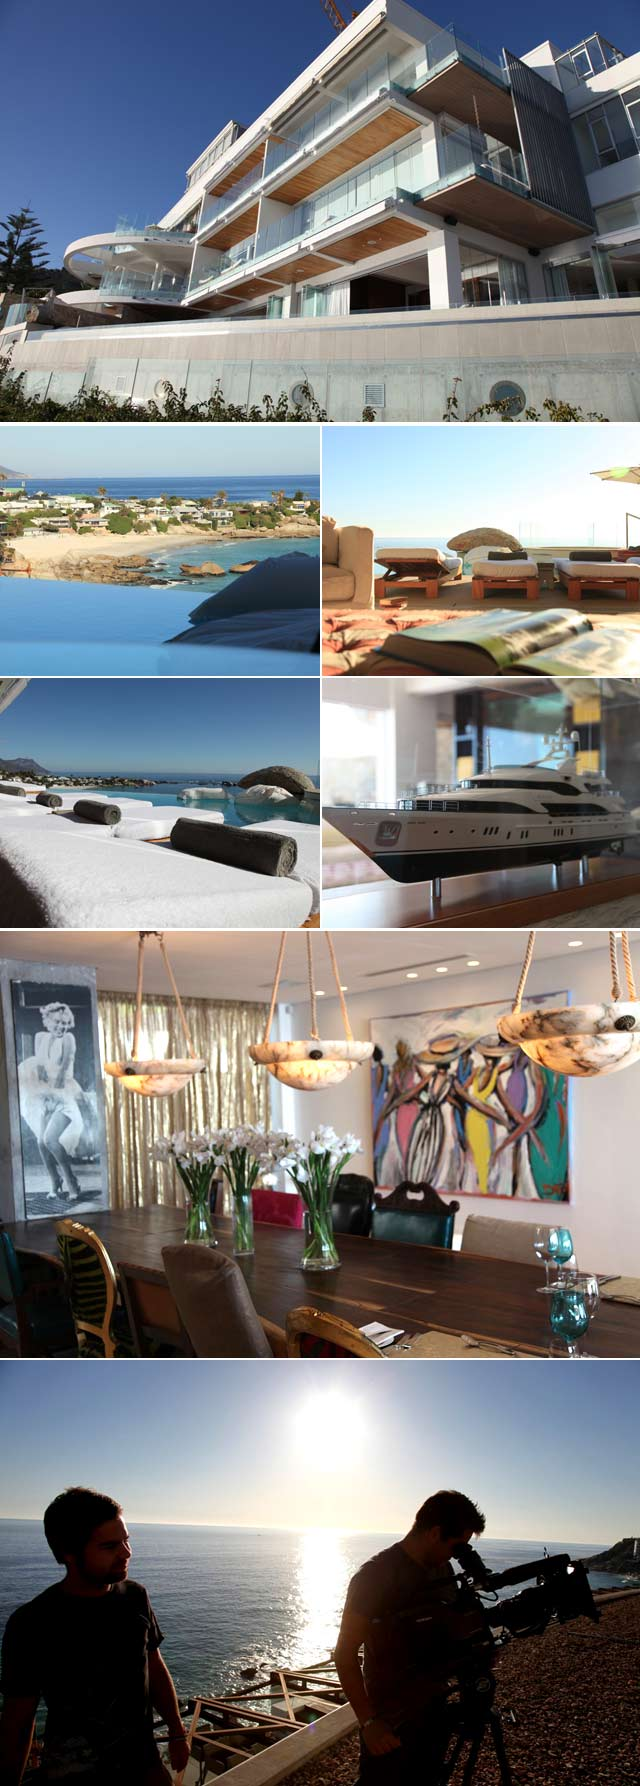 Top Billing featured house Molori Clifton in Cape Town